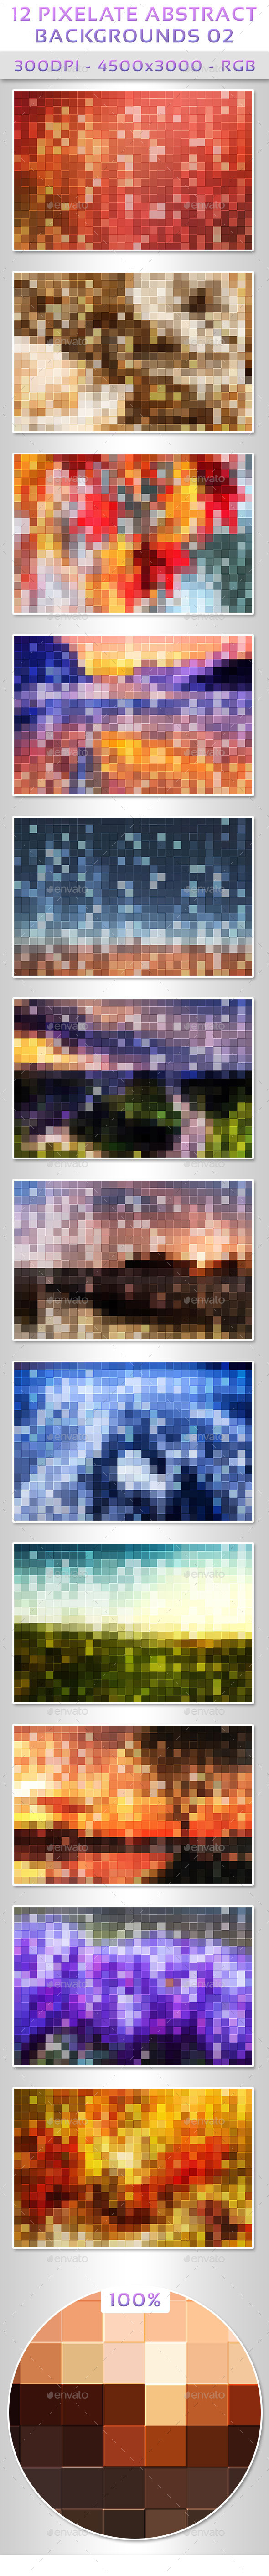 12 Pixelate Abstract Backgrounds 02 - Abstract Backgrounds